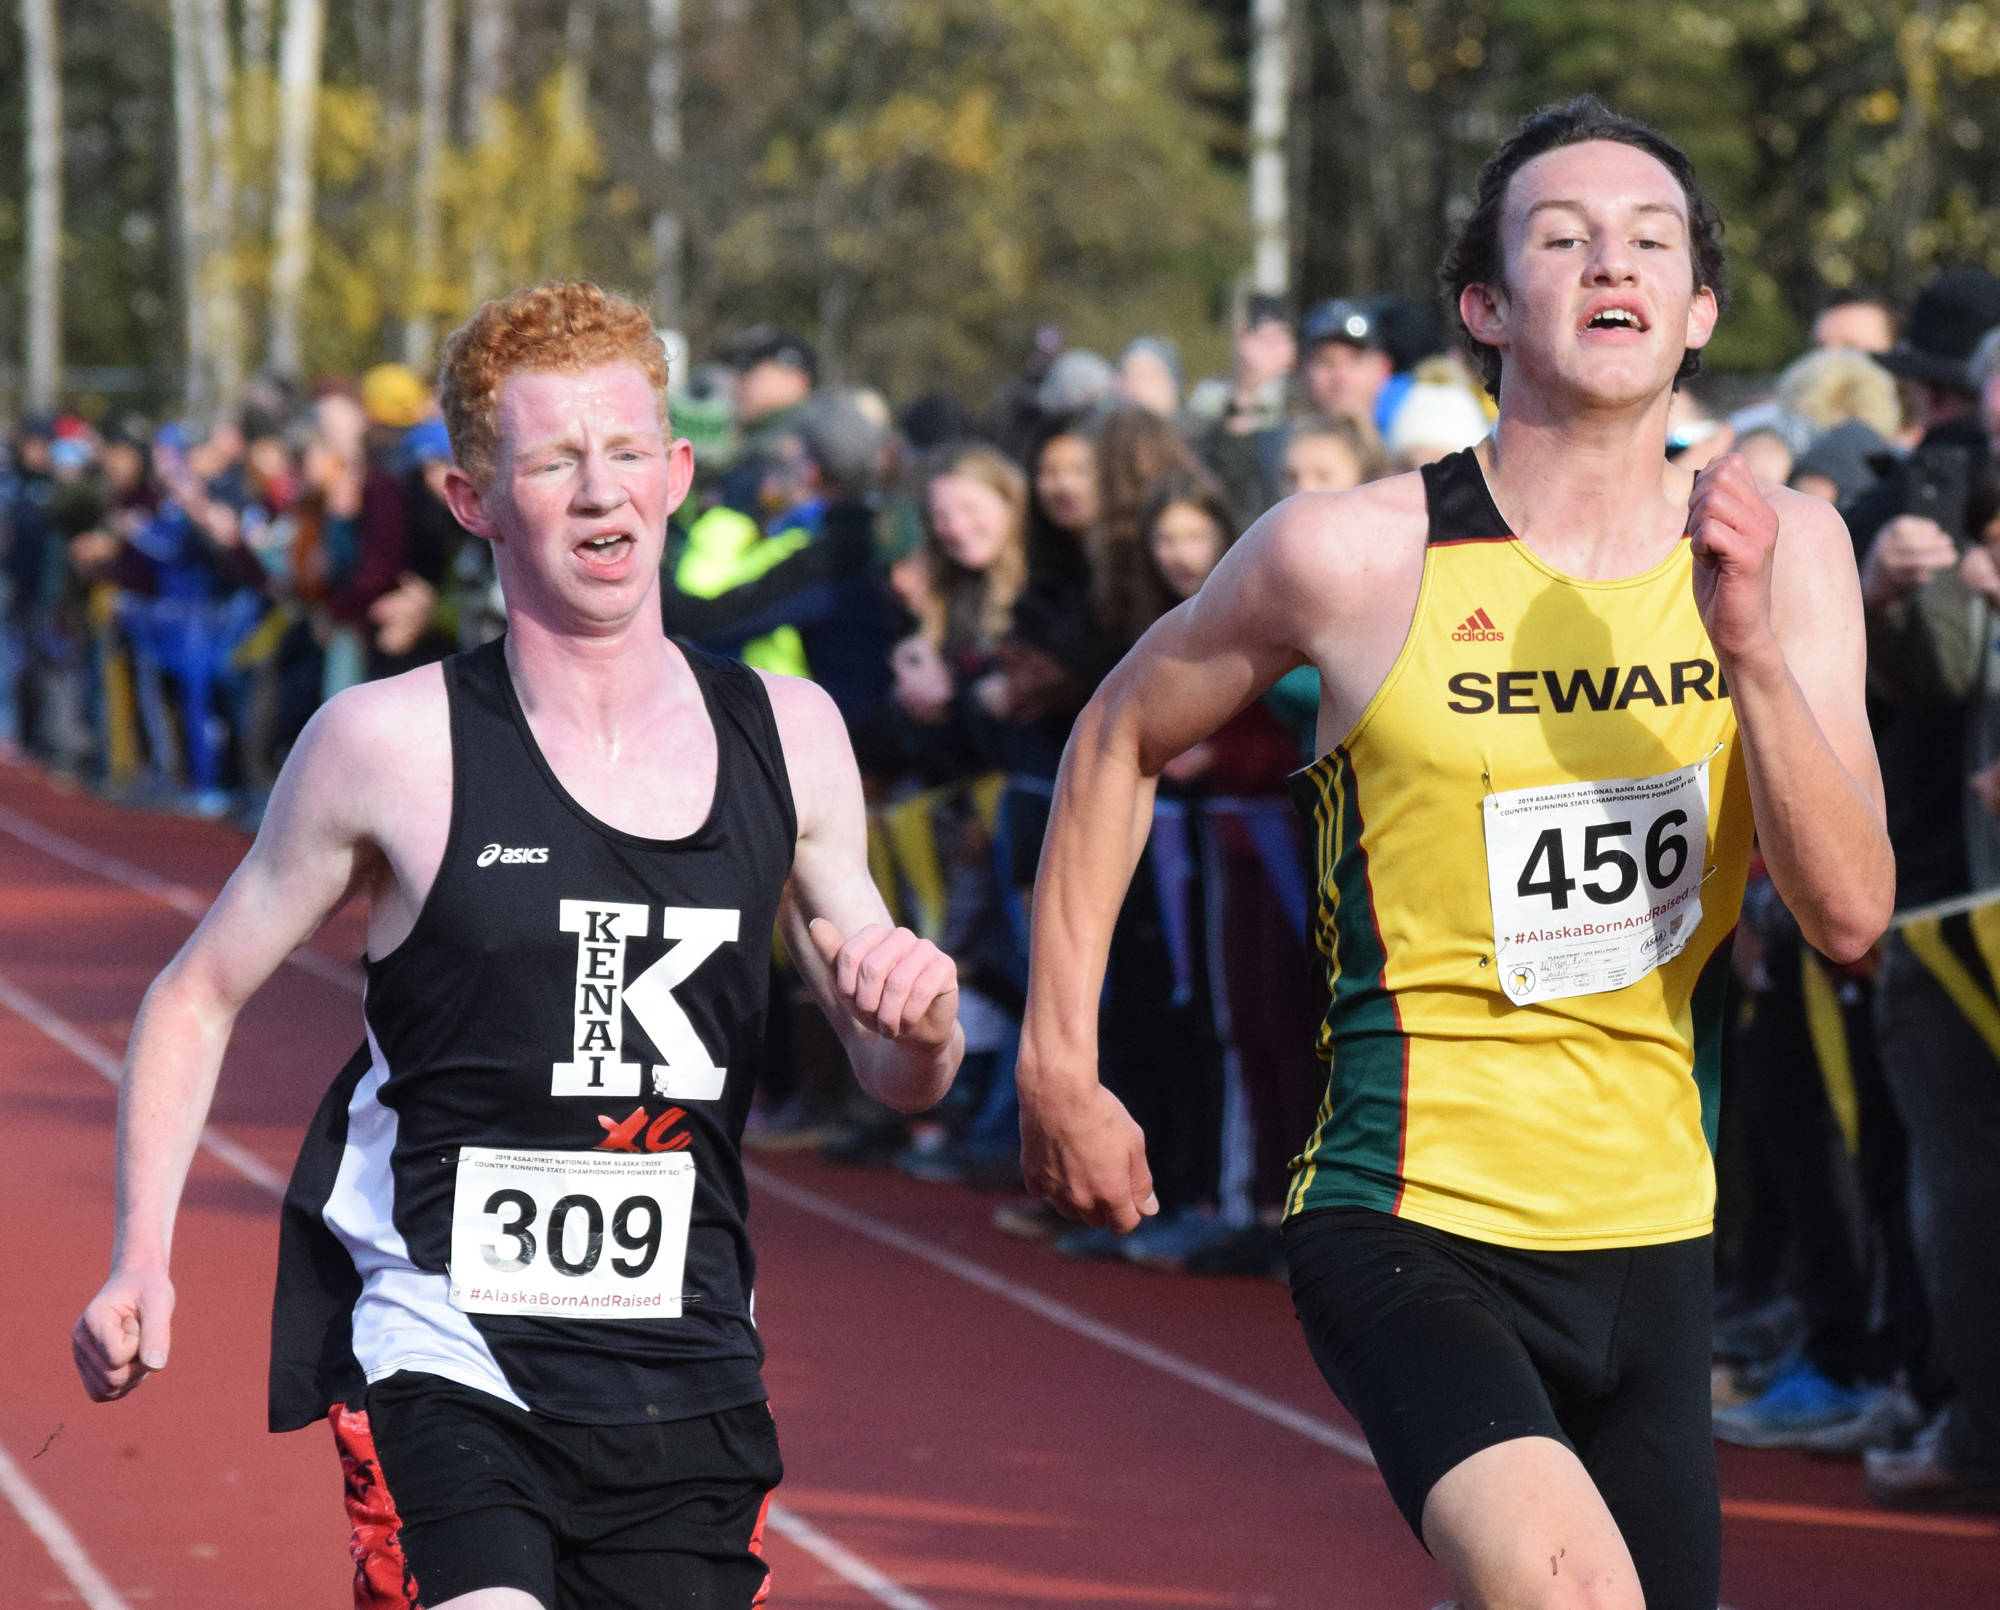 Kenai's Joe Hamilton (left) and Seward's Bjorn Nilsson race for 13th-place in the Div. II boys state cross-country championships Saturday, Oct. 5, 2019, on the Bartlett High trails in Anchorage, Alaska. (Photo by Joey Klecka/Peninsula Clarion)